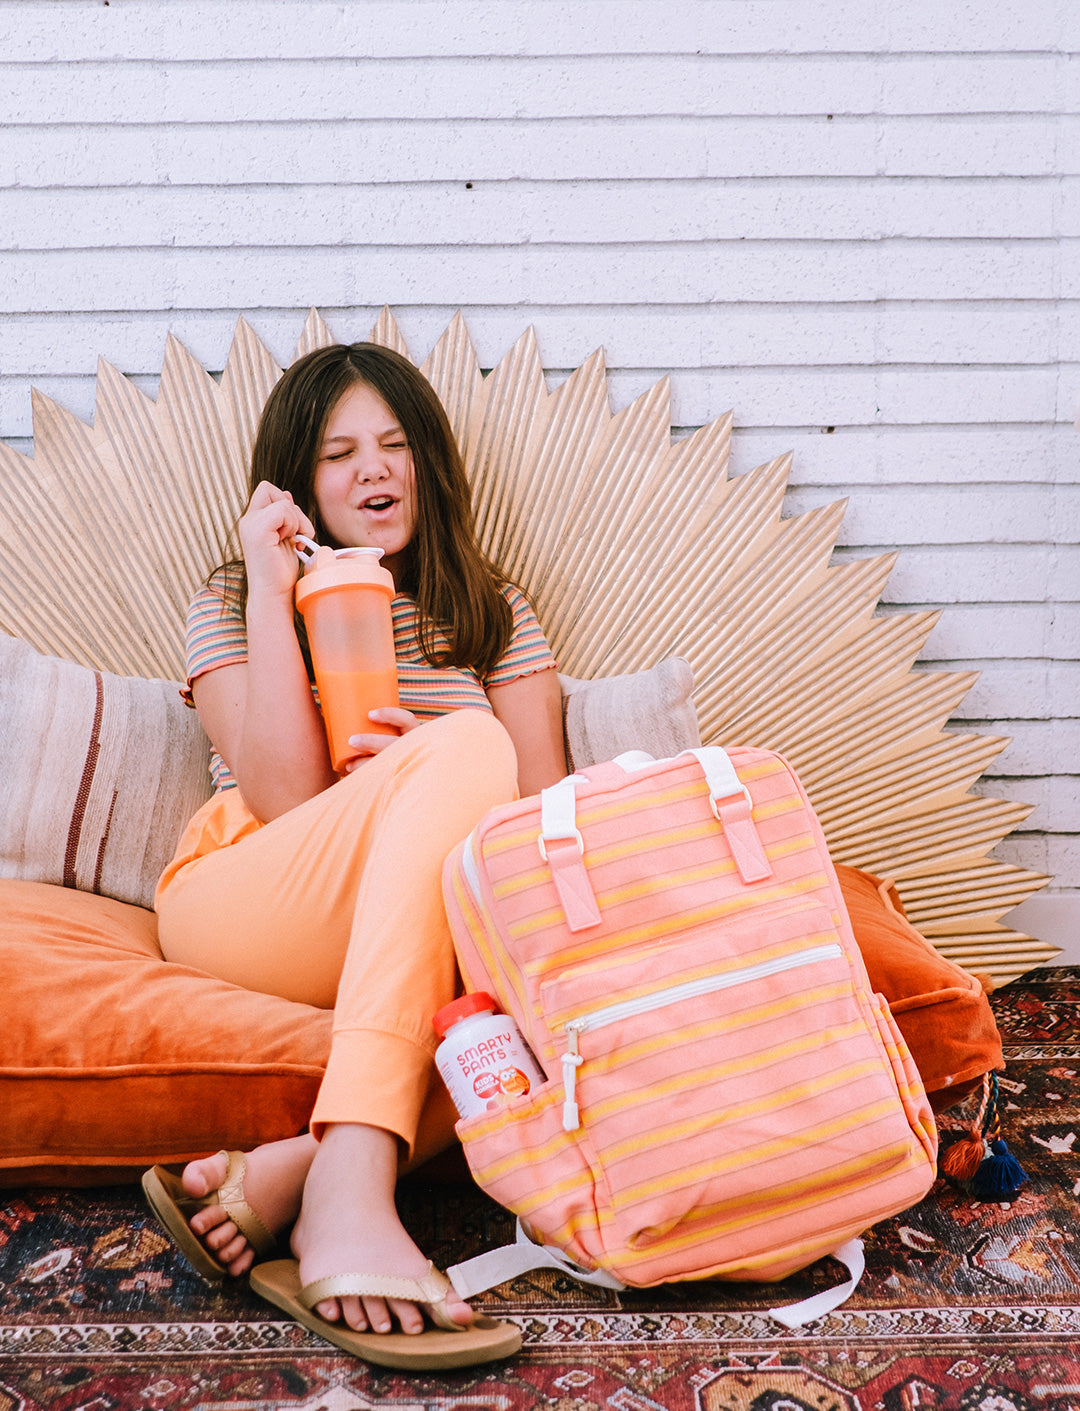 Girl sitting on an orange poof making a silly face, holding a shaker with an orange drink, and her backpack for school in front of her.